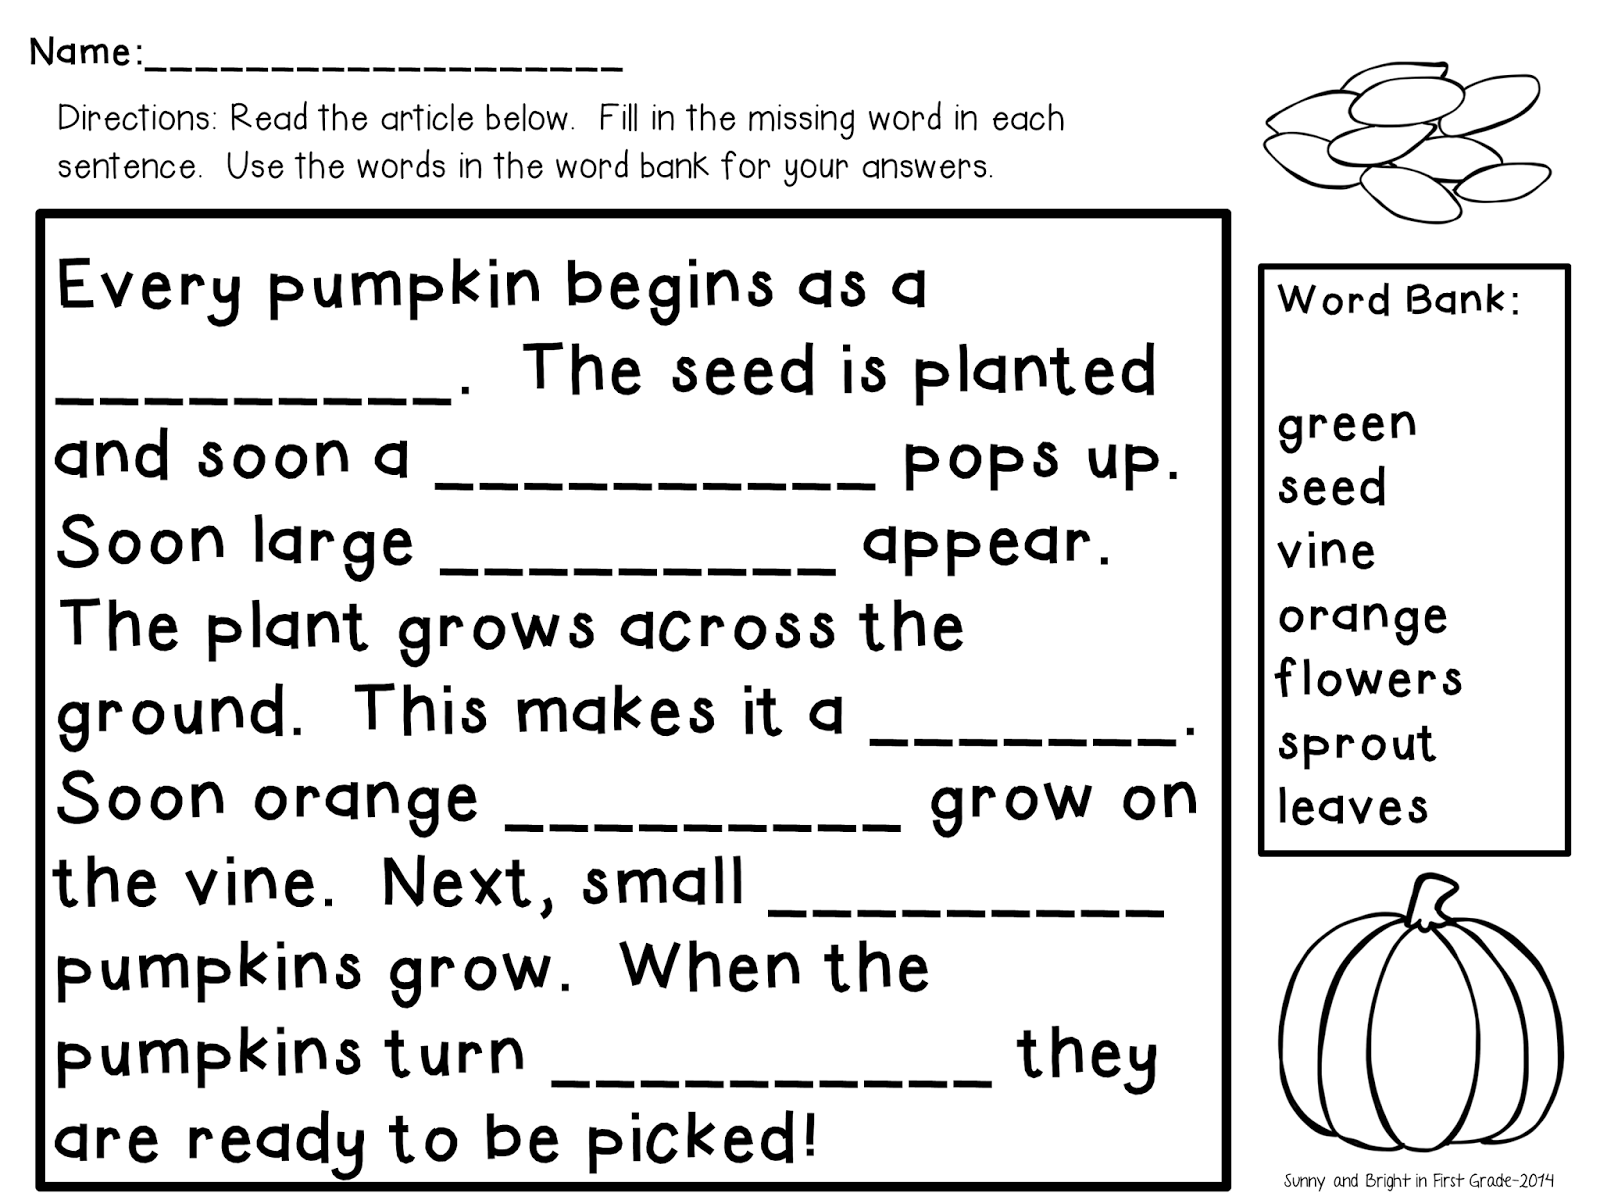 Worksheet Life Cycle Of A Pumpkin Worksheet Worksheet